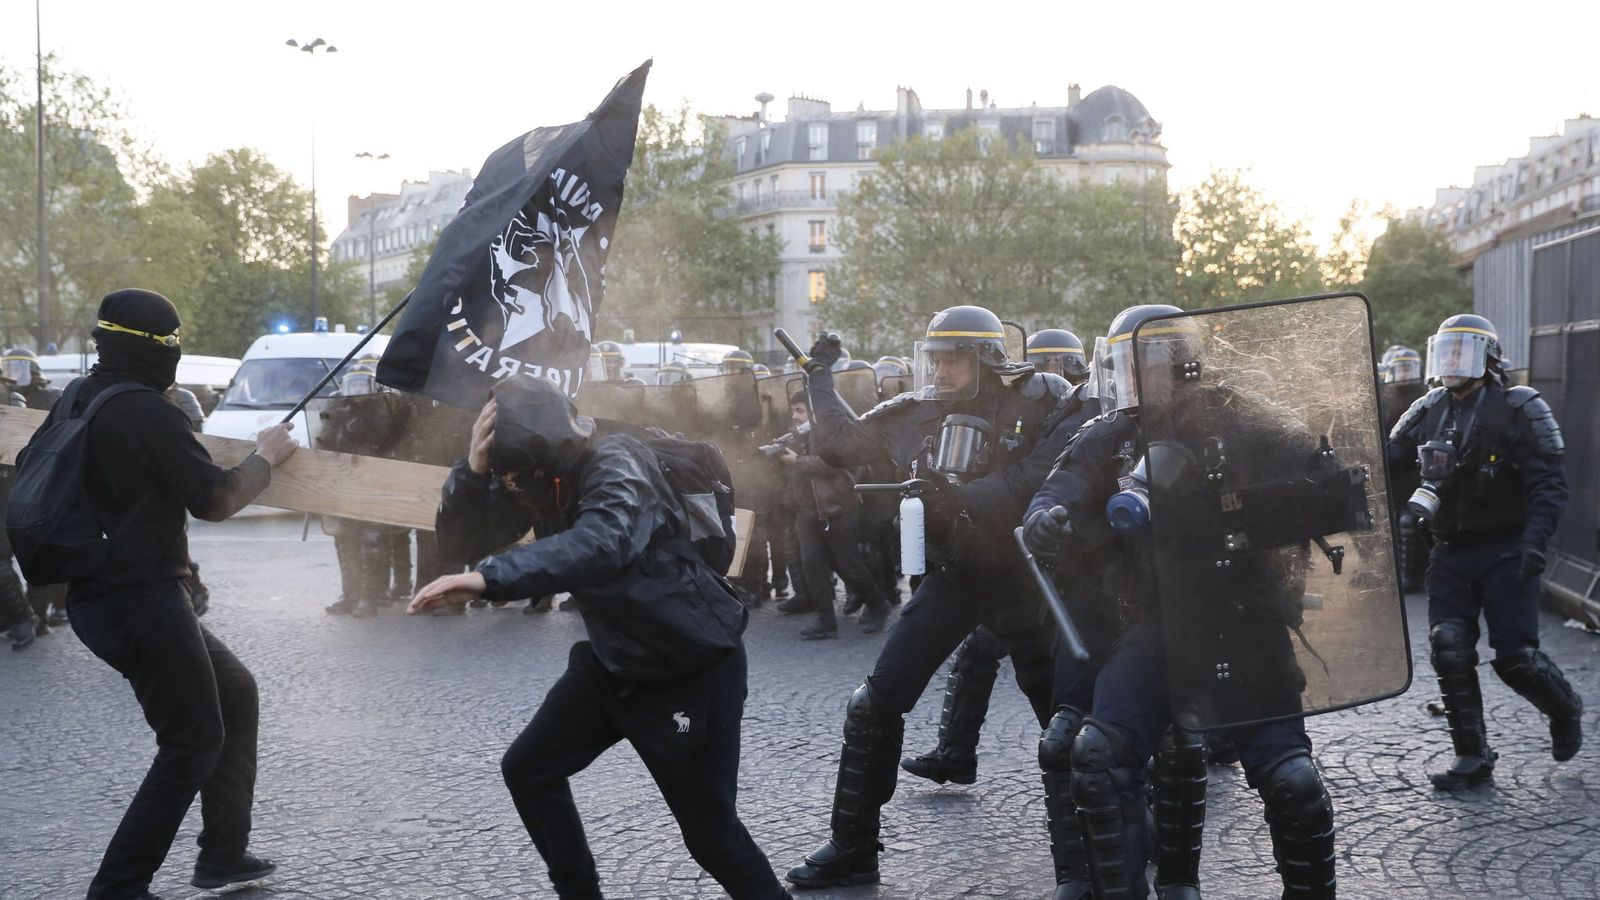 Anti-fascists clash with police forces as they demonstrate in Paris on April 23, 2017 following the announcement of the results of the first round of the Presidential election. Centrist Emmanuel Macron finished ahead of far-right leader Marine Le Pen on Sunday to qualify alongside her for the runoff in France's presidential election, initial projections suggested